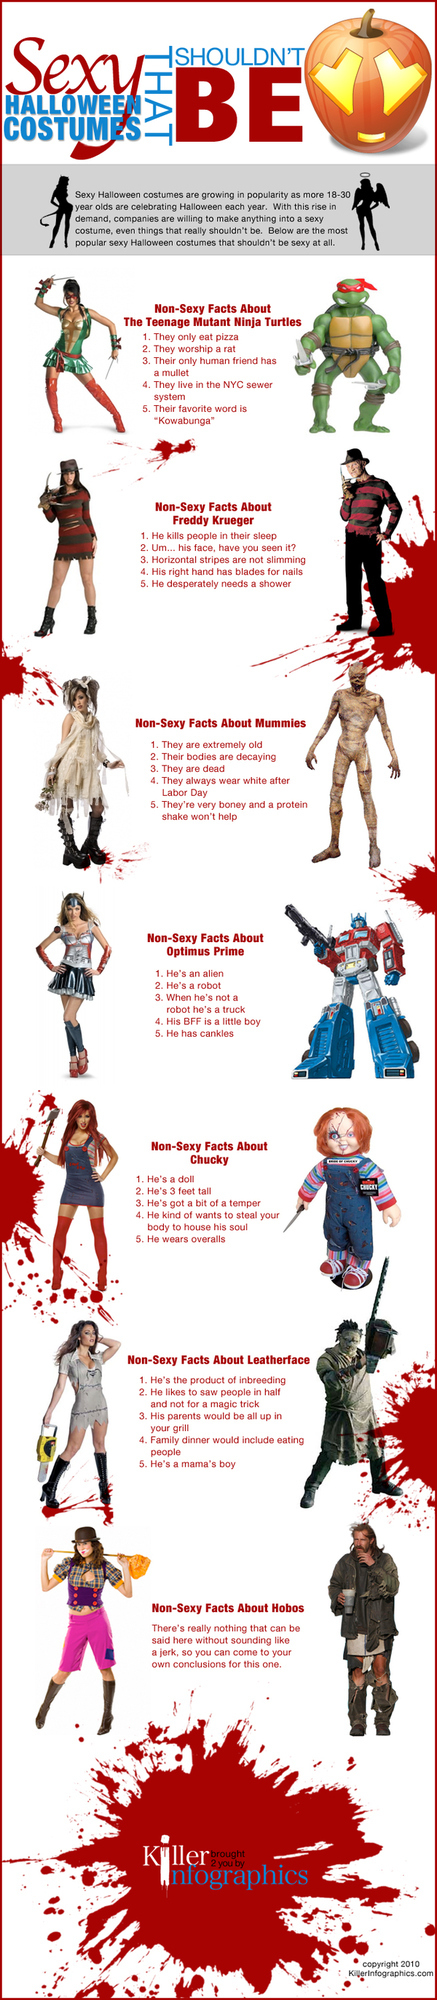 Sexy Halloween Costumes That Shouldn't Be (The Infographic)